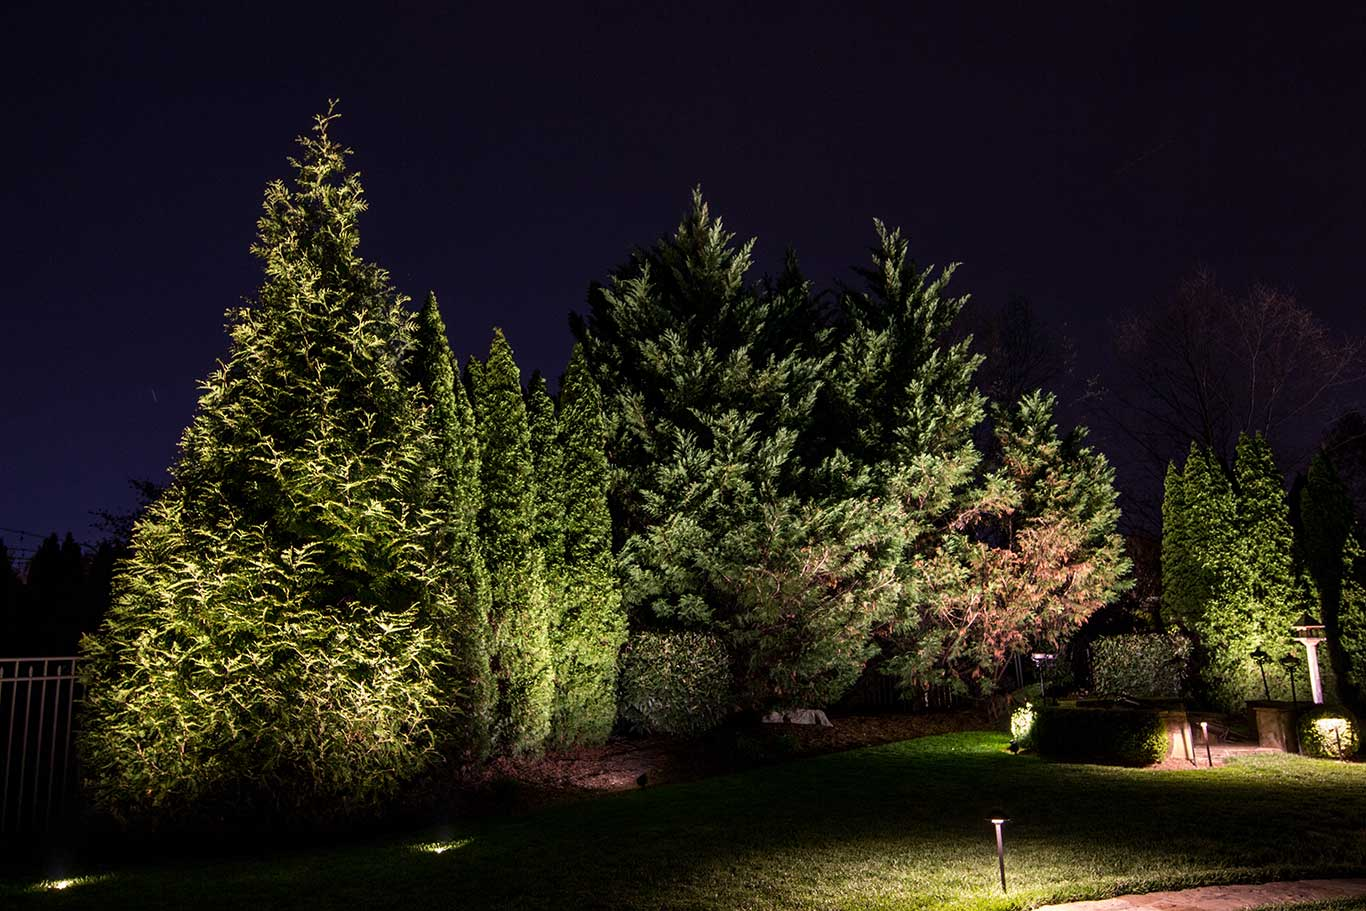 lighting trees along back perimeter of backyard for security